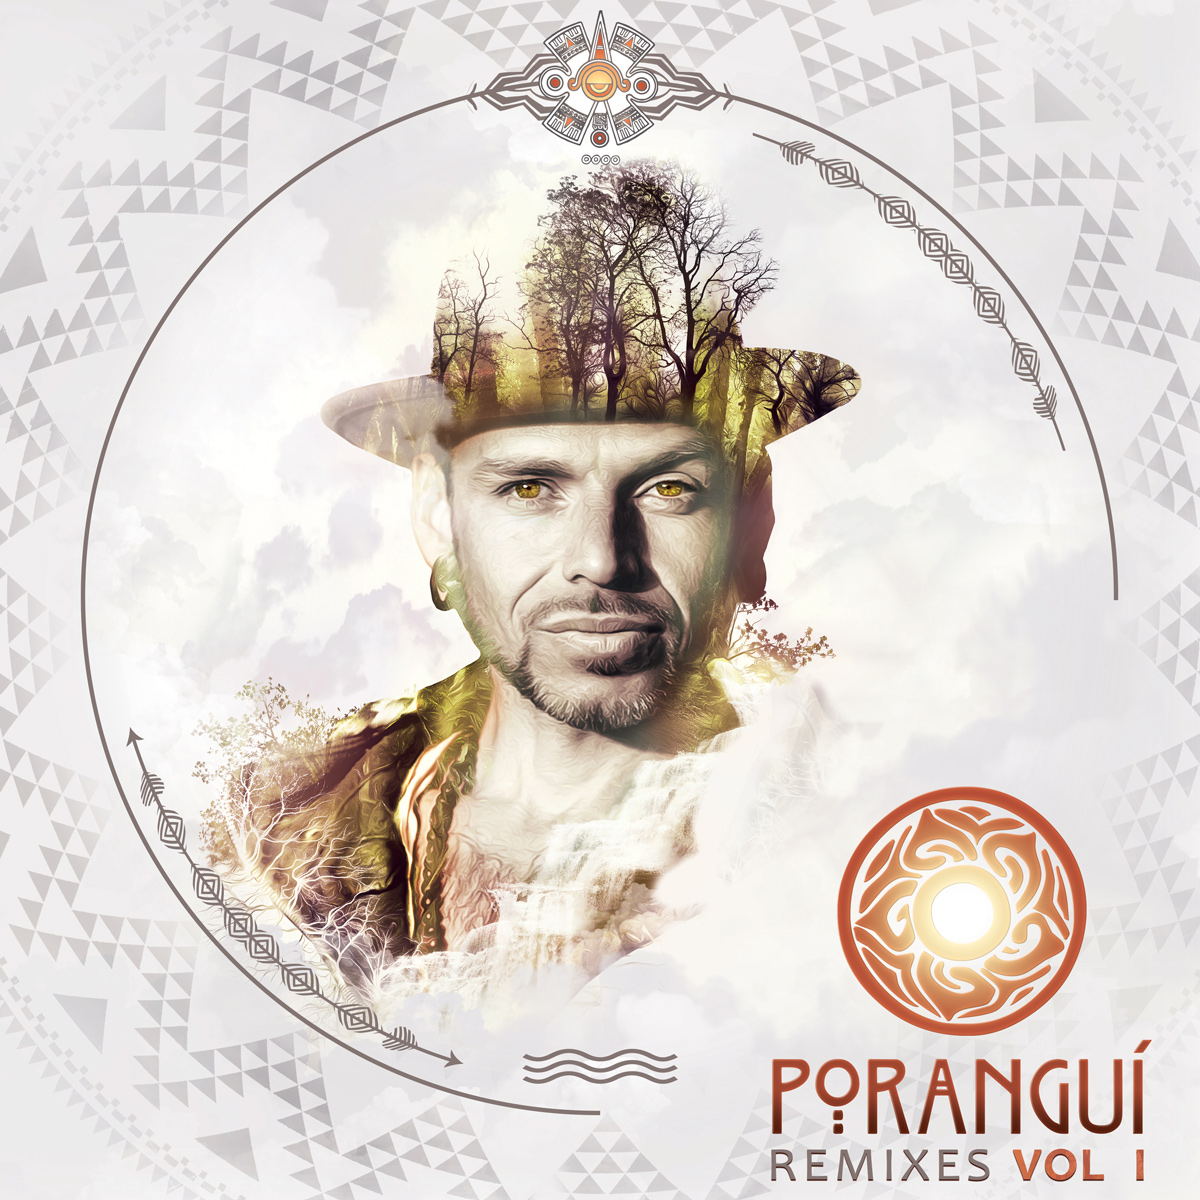 Poranguí Remixes Vol I